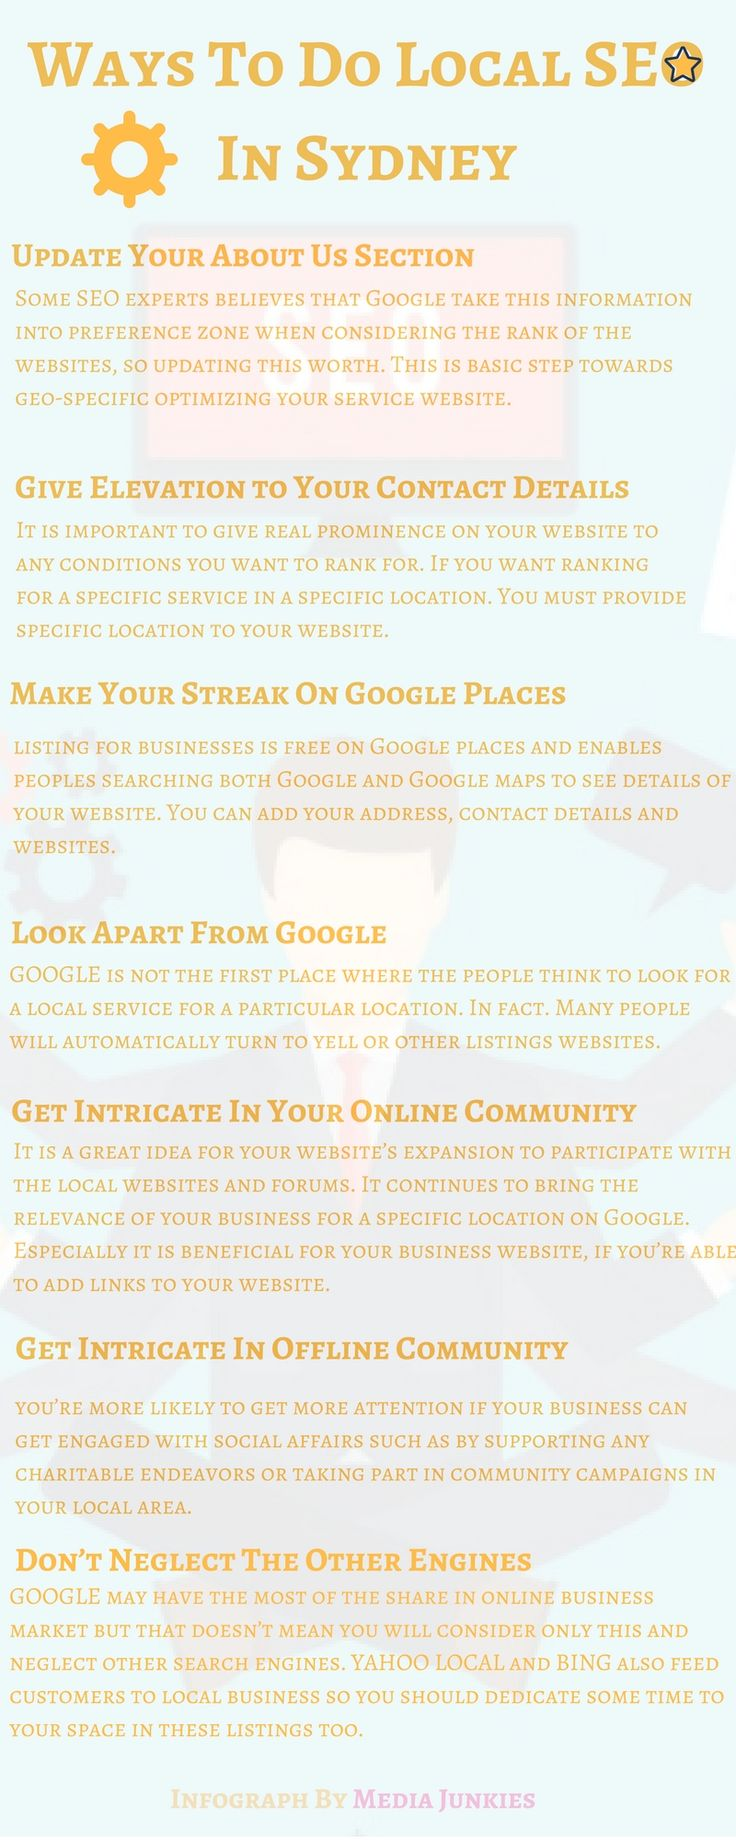 An effective local search engine optimization campaign begins by using specific keywords to target the subjects which aim your website to rank higher on search engine. Most people who are internet brainy would probably assume it is much easier to do SEO  themselves hiring any SEO expert. In some cases this may work but in most of the cases it is proved as less effective for web business.